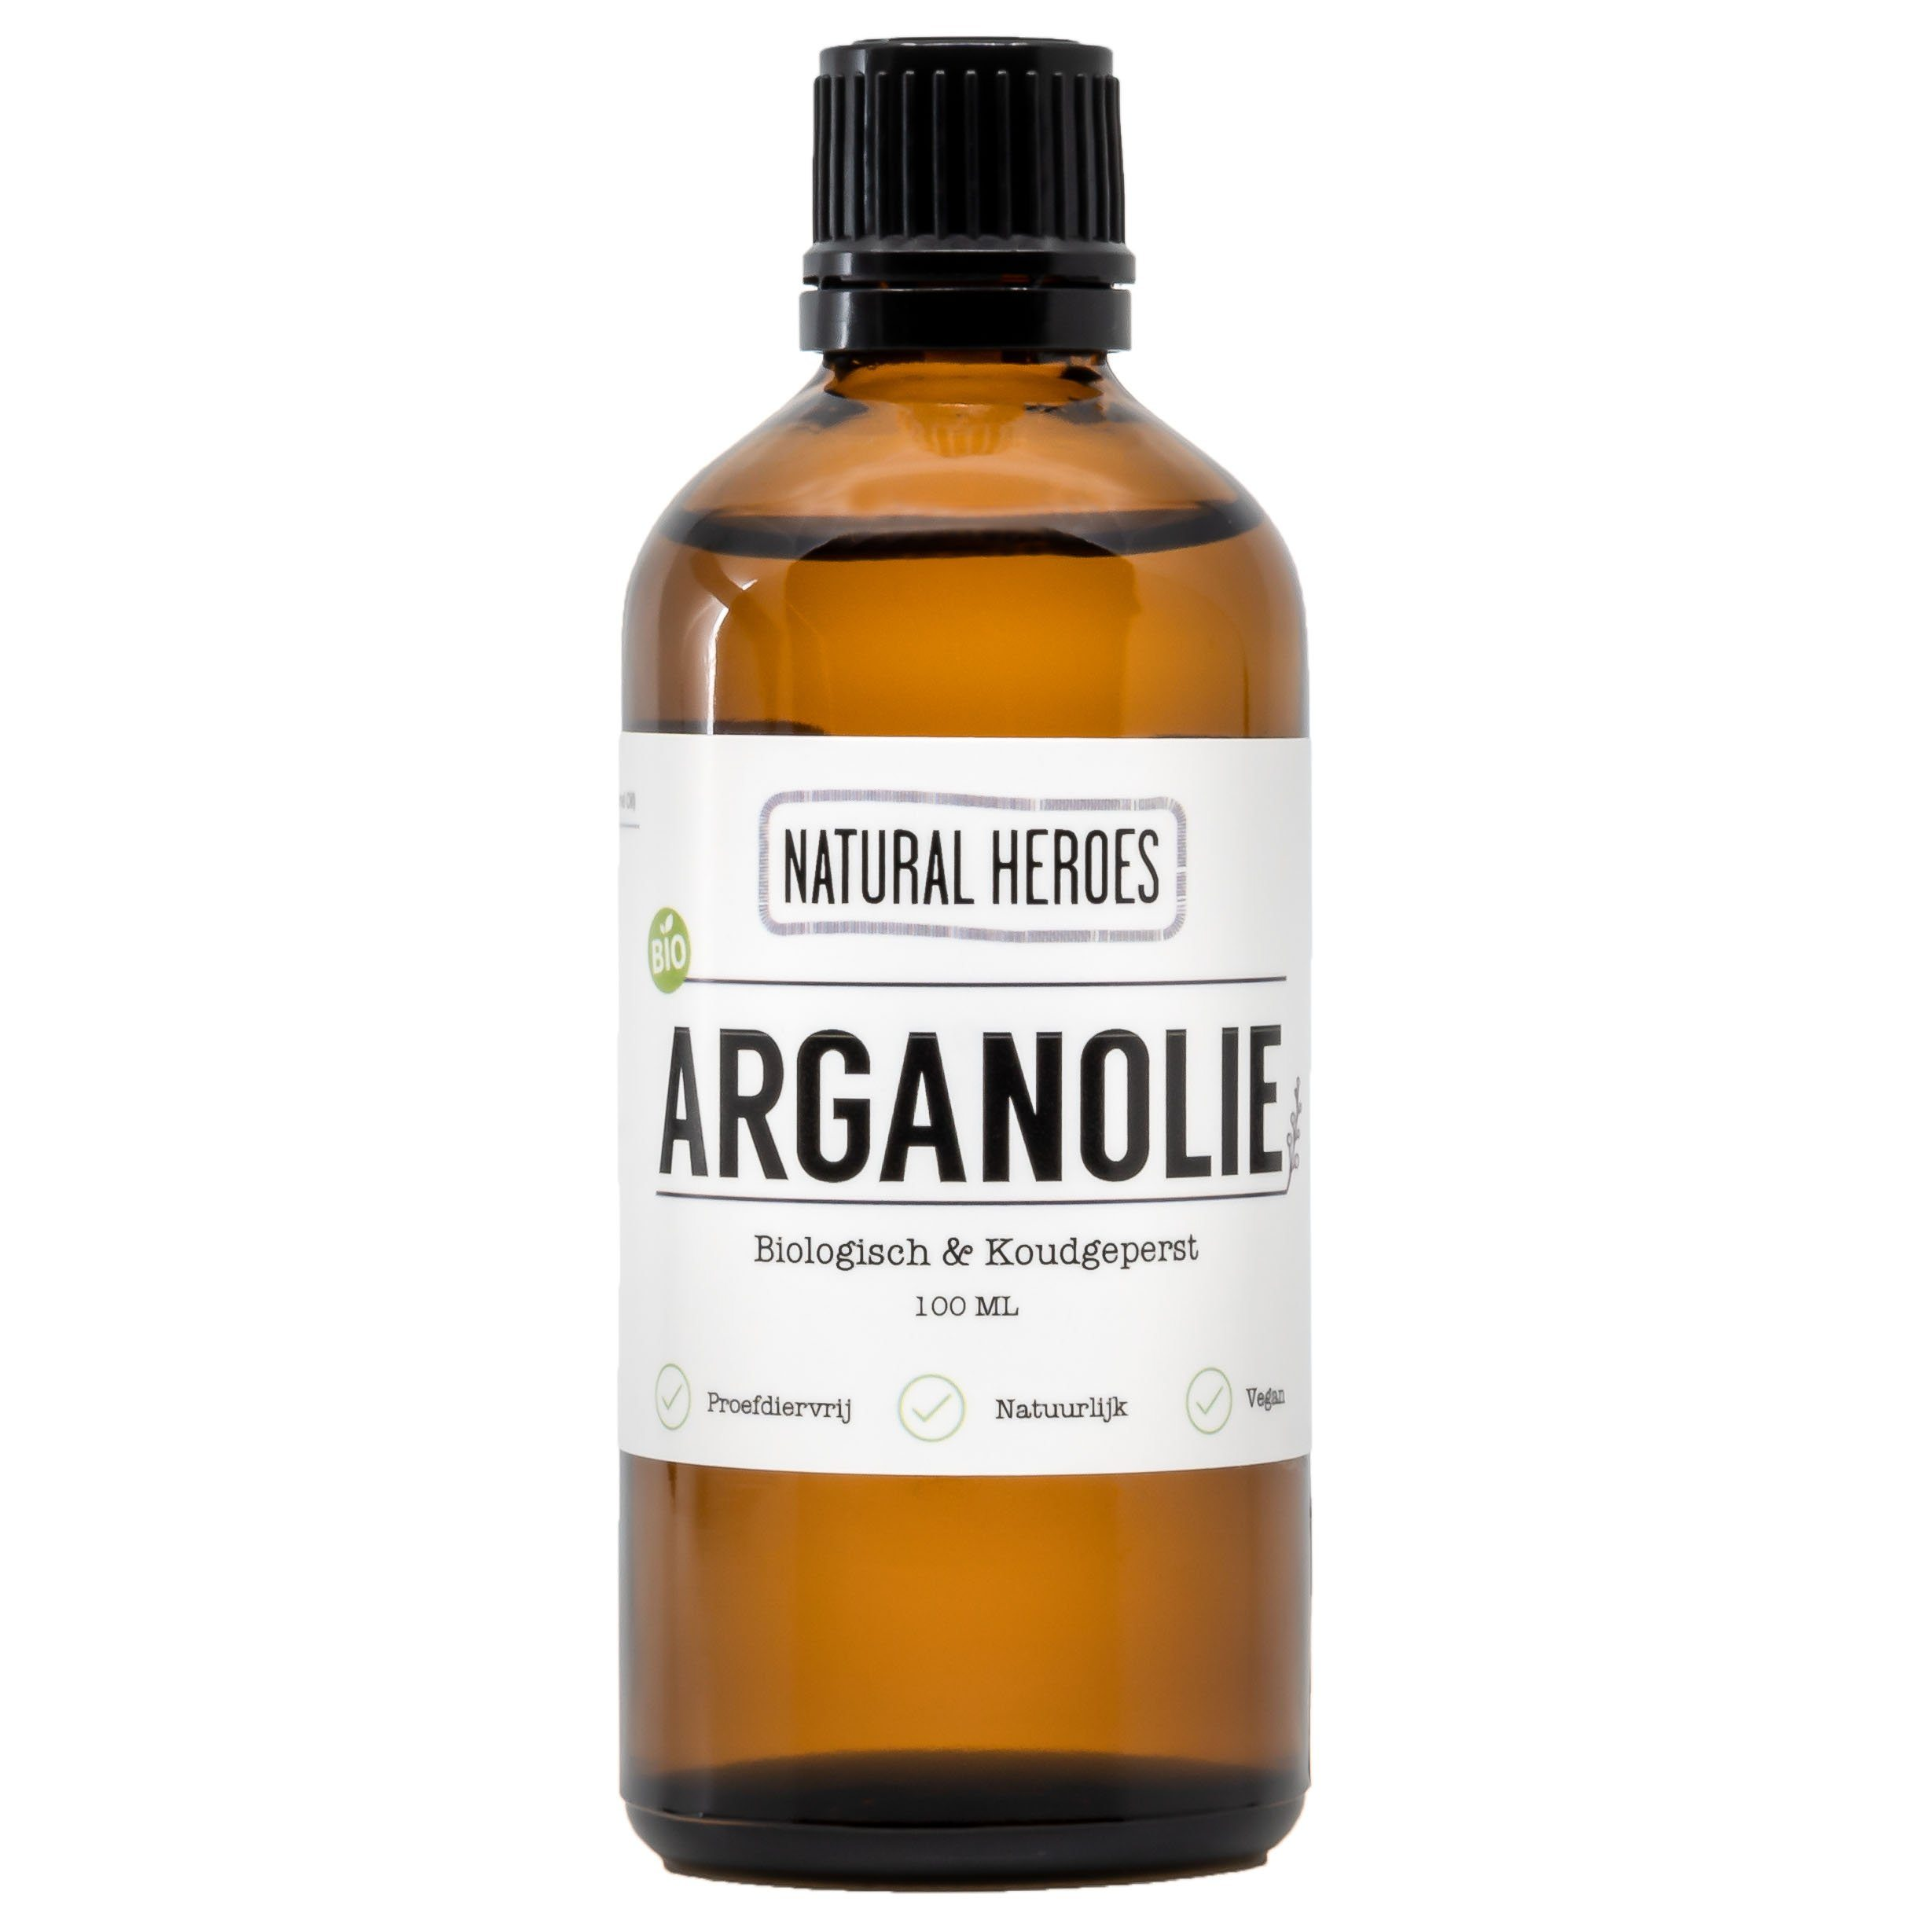 Argan Olie (Biologisch & Koudgeperst) Natural Heroes 100 ml